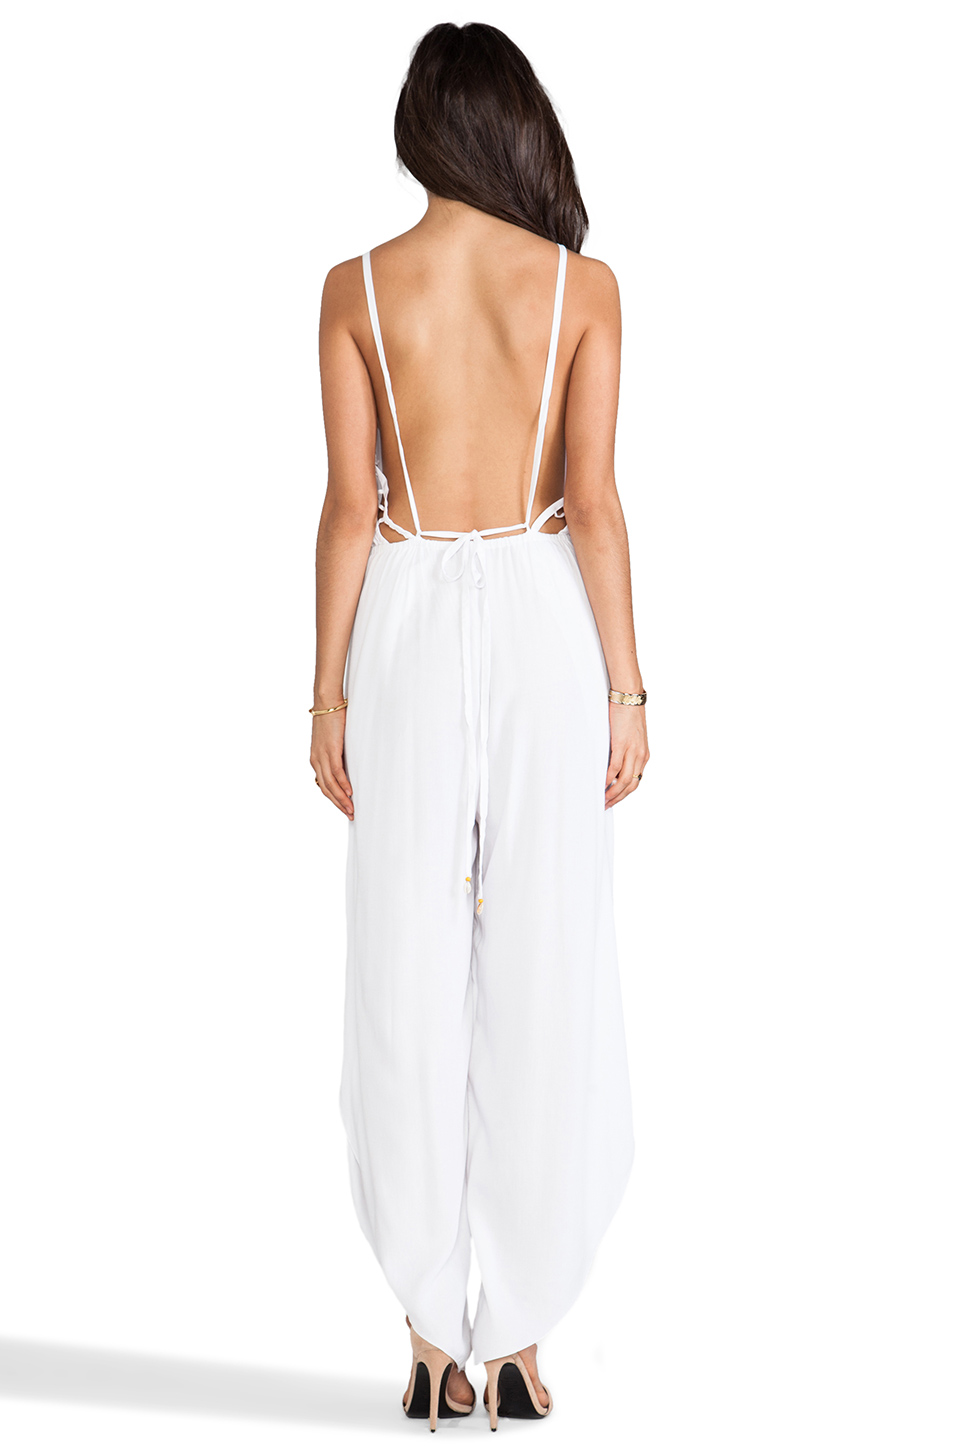 Indah Gypsy Deep V Cut Out Trim Jumpsuit in White